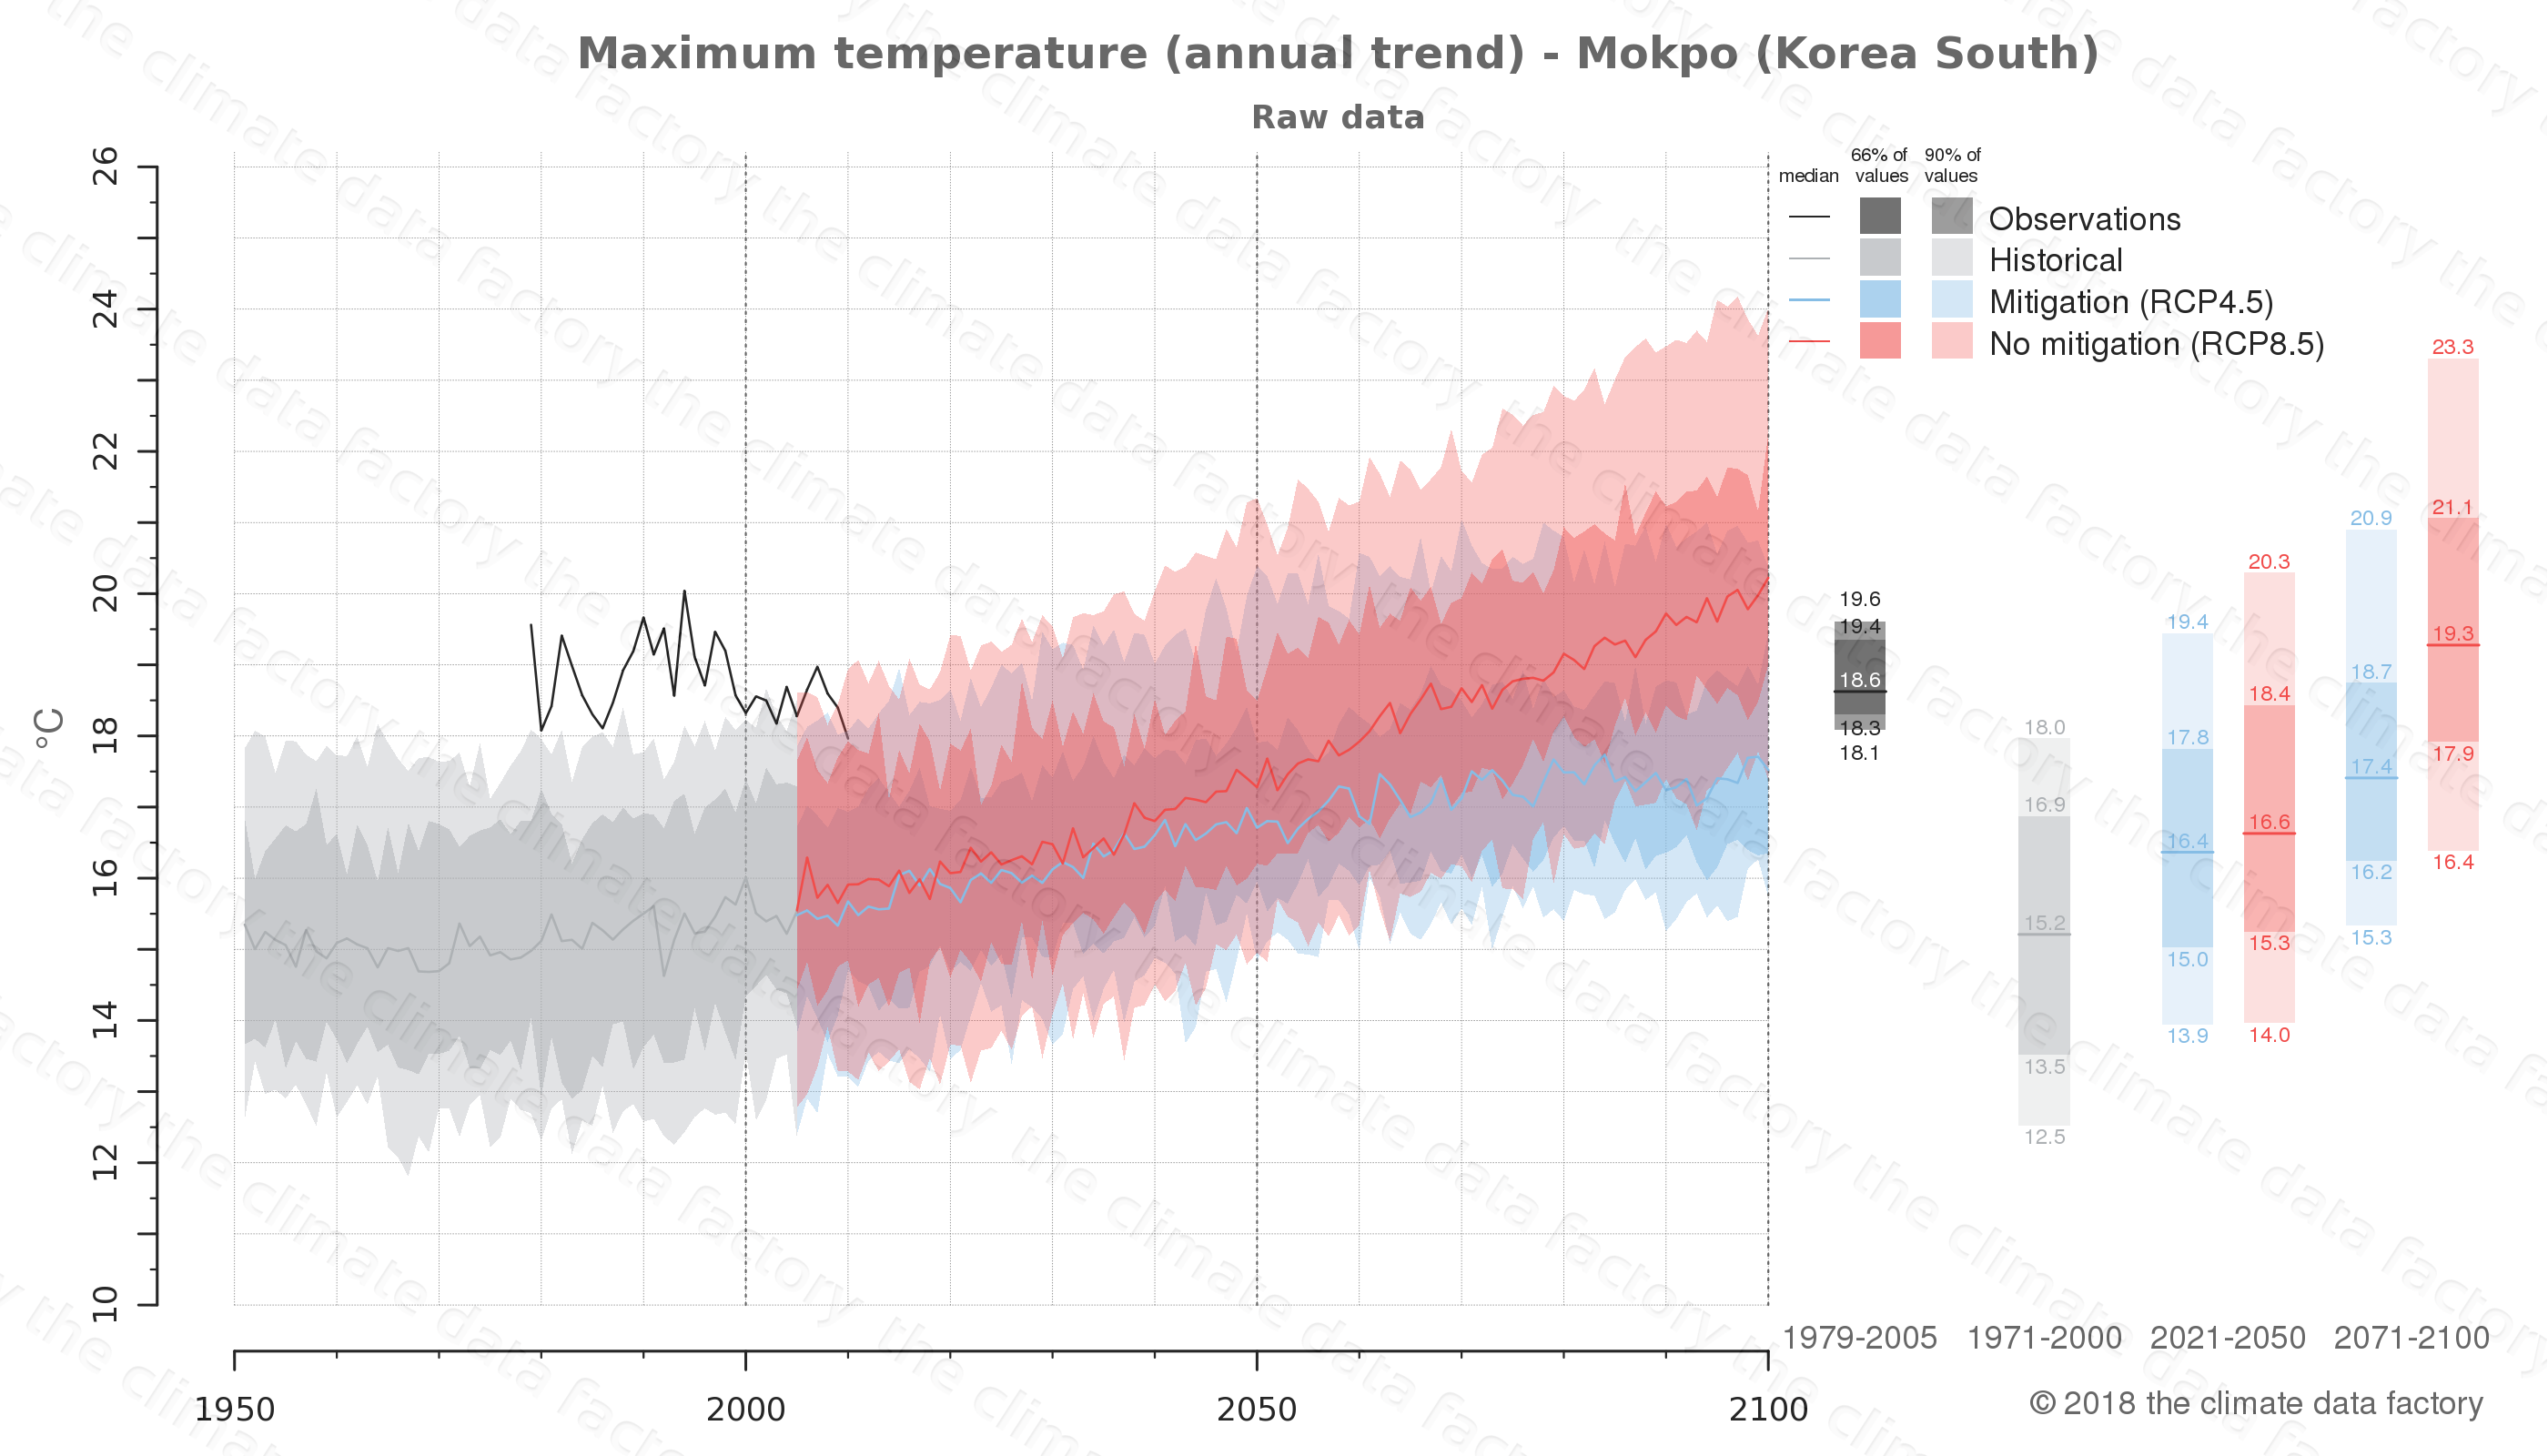 climate change data policy adaptation climate graph city data maximum-temperature mokpo south korea